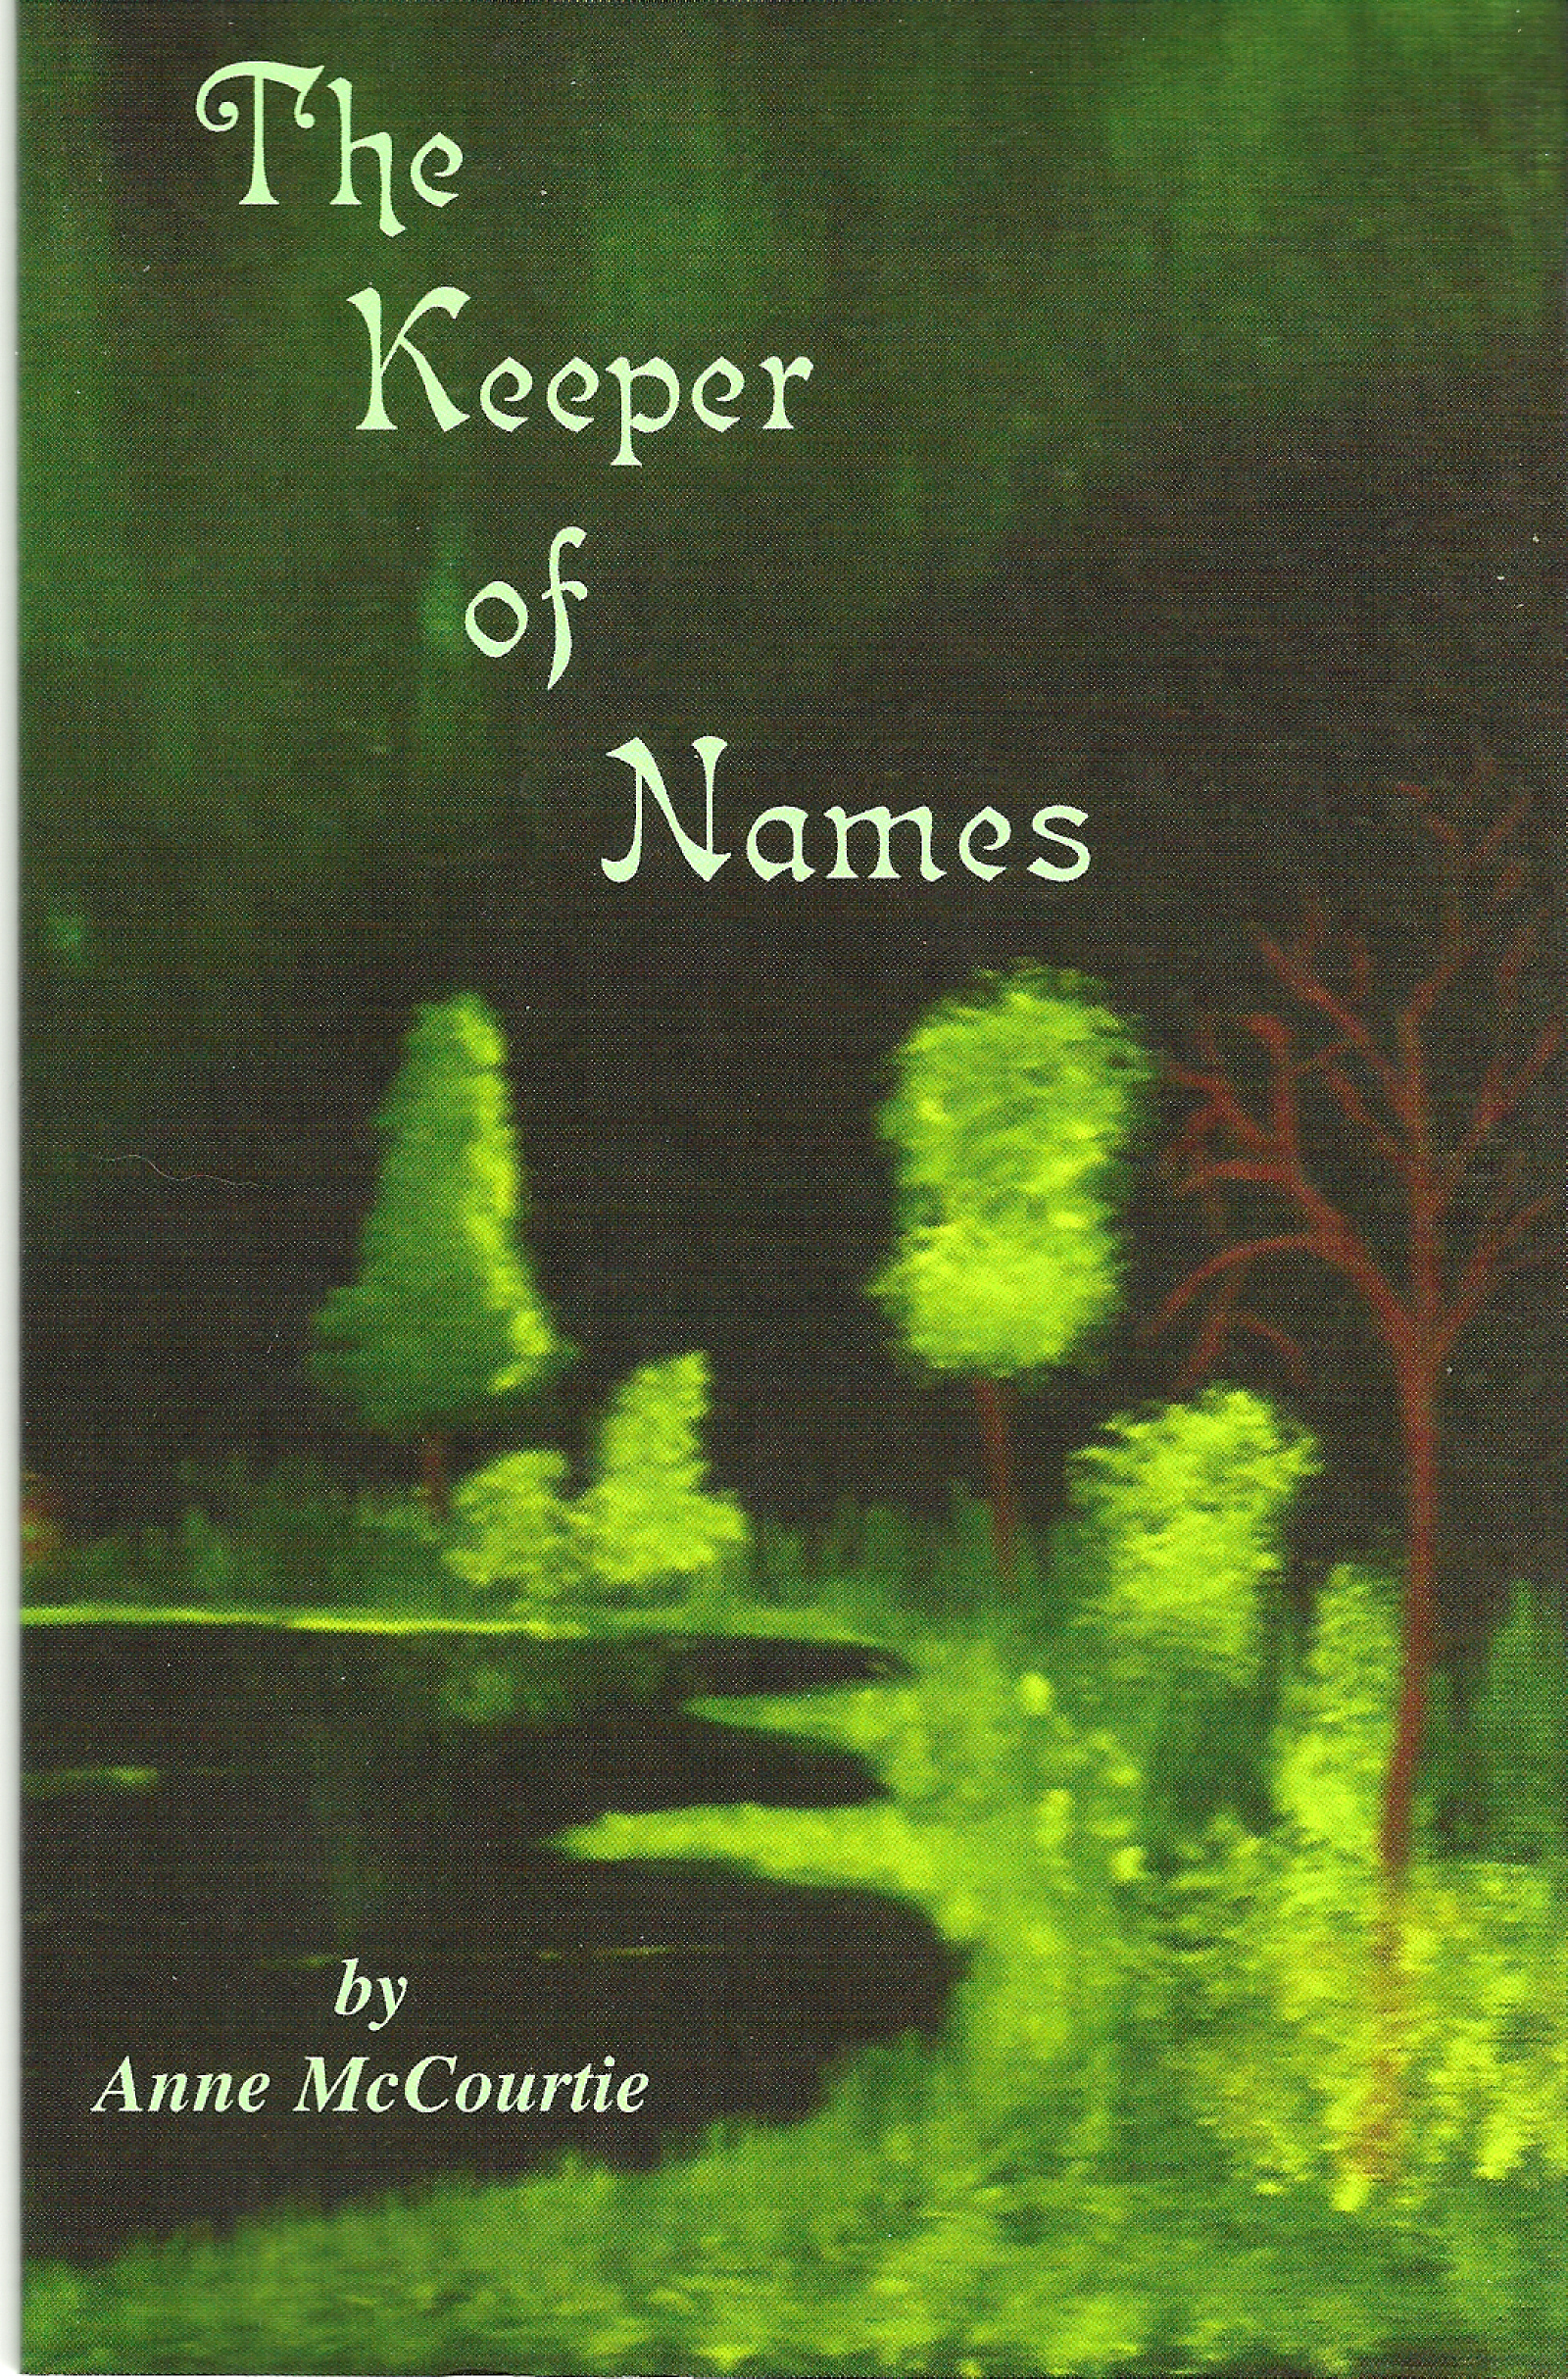 The Keeper of Names